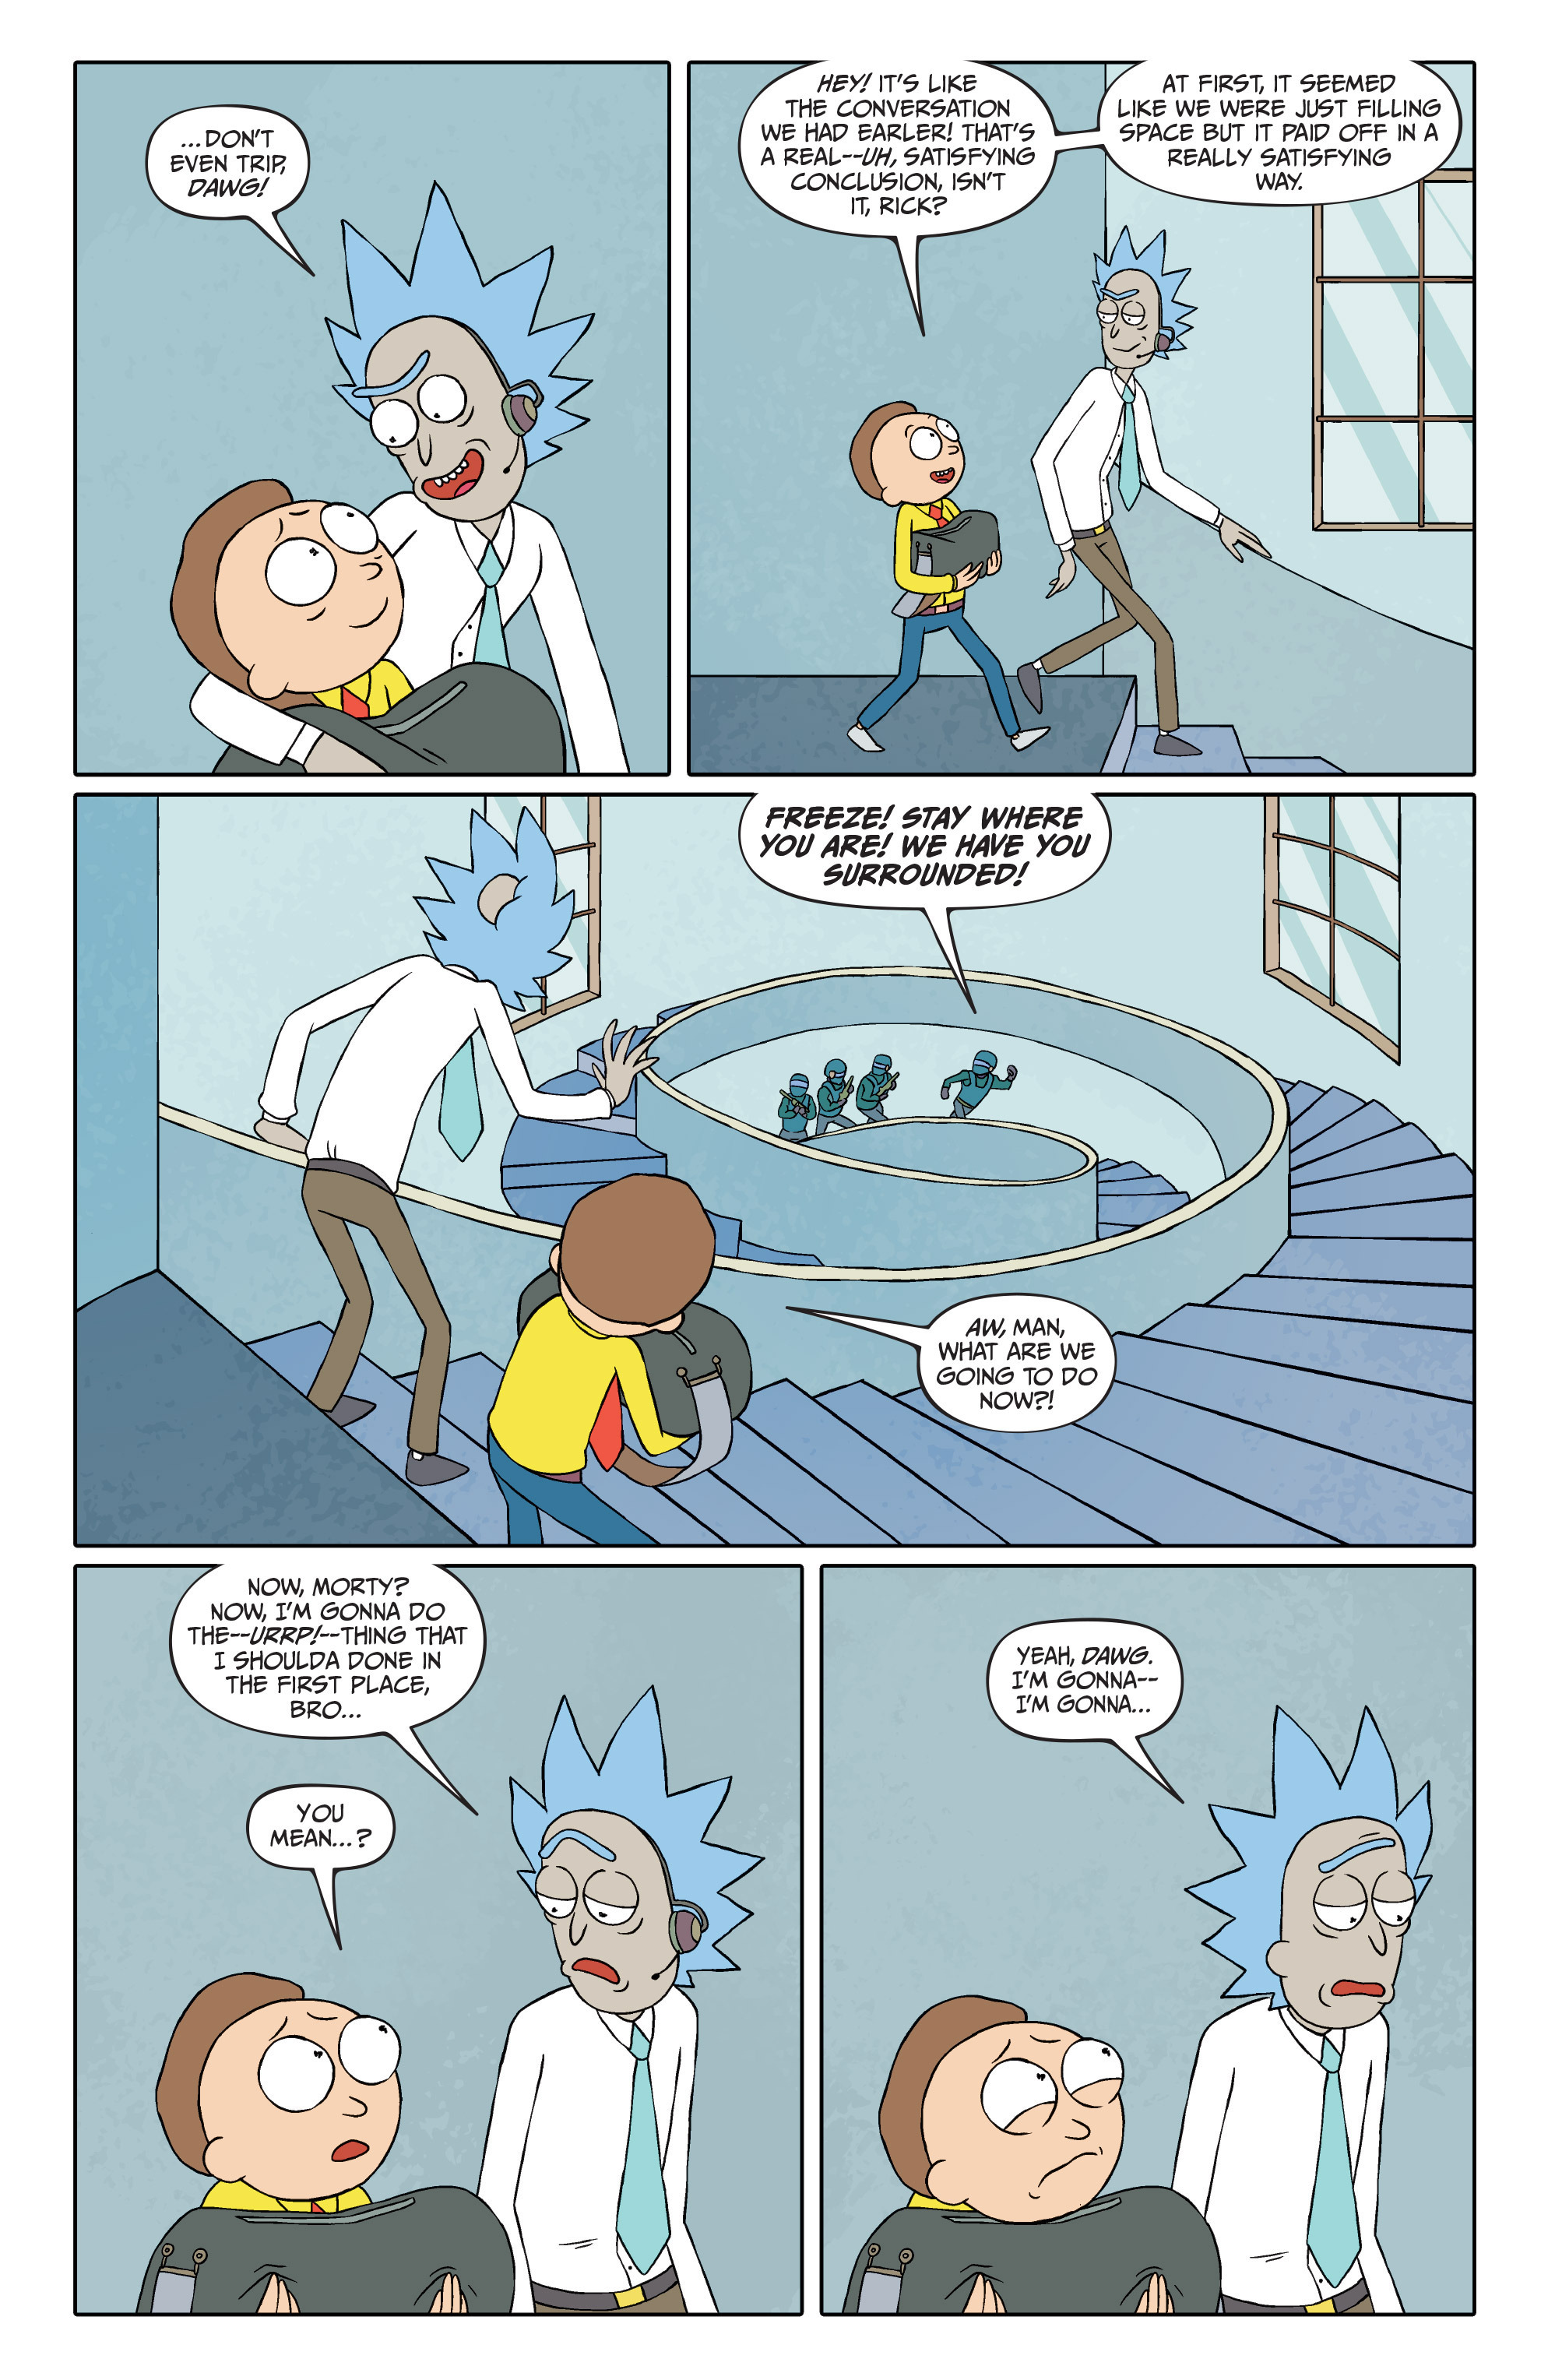 Rick and Morty #34 - Read Rick and Morty Issue #34 Page 17